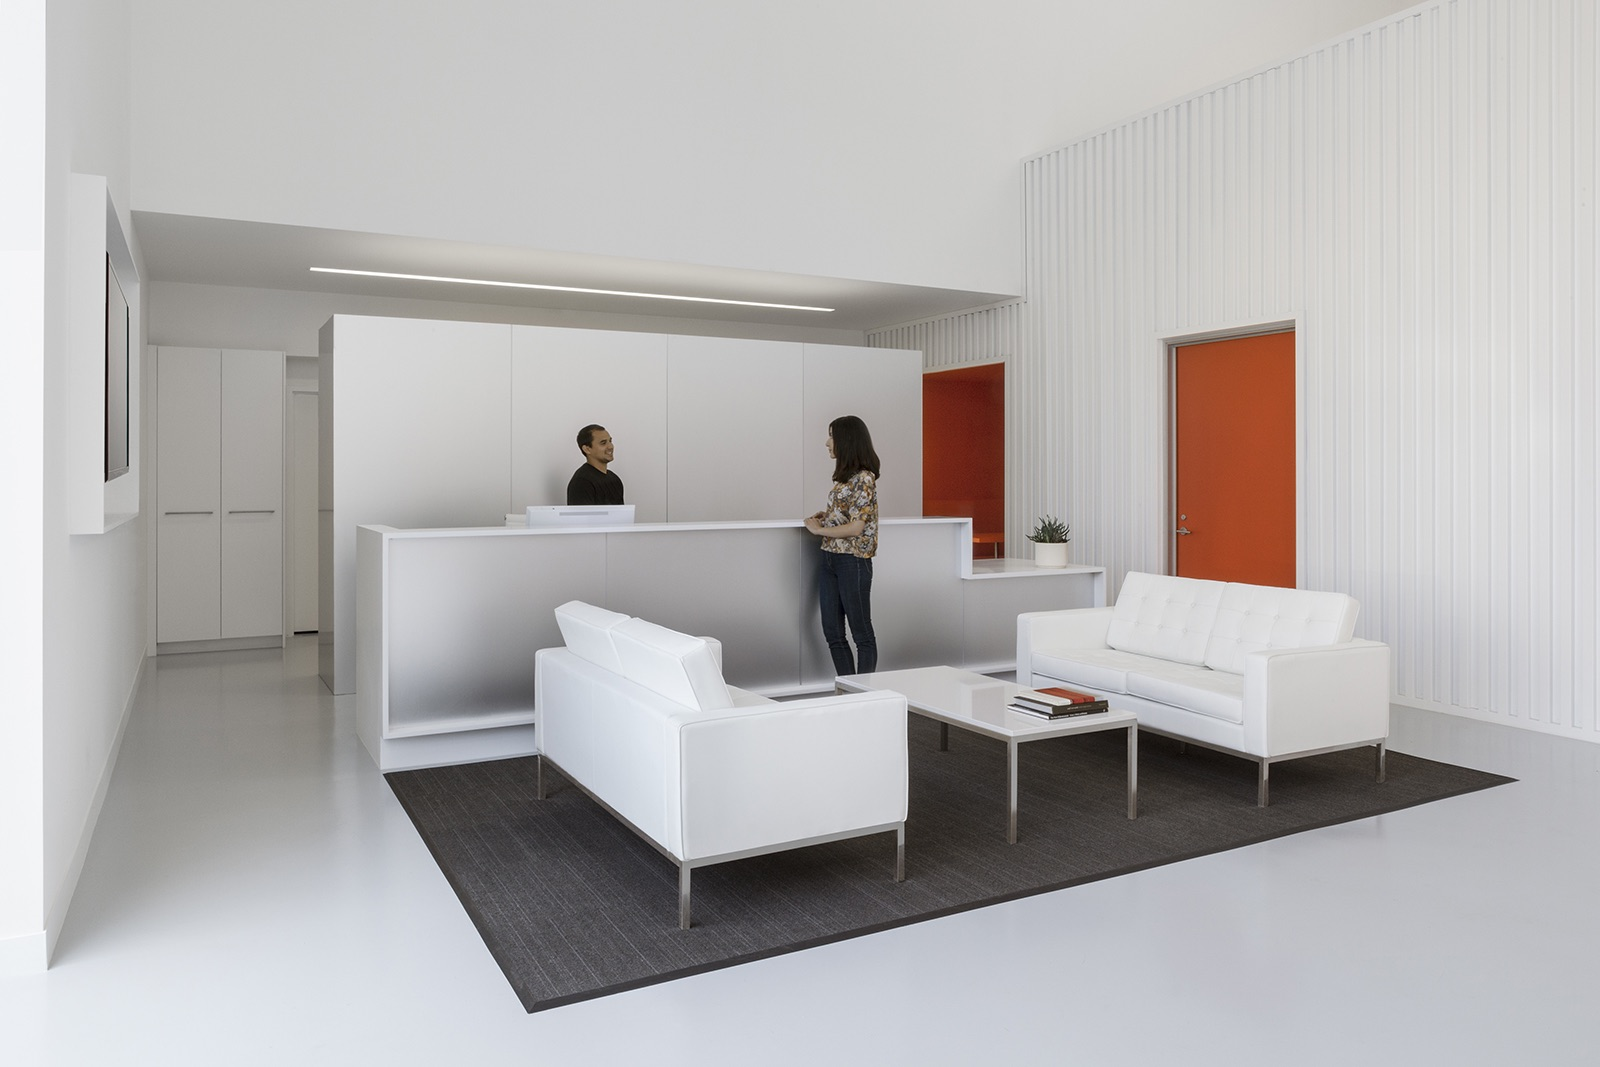 servicon-systems-los-angeles-office-2